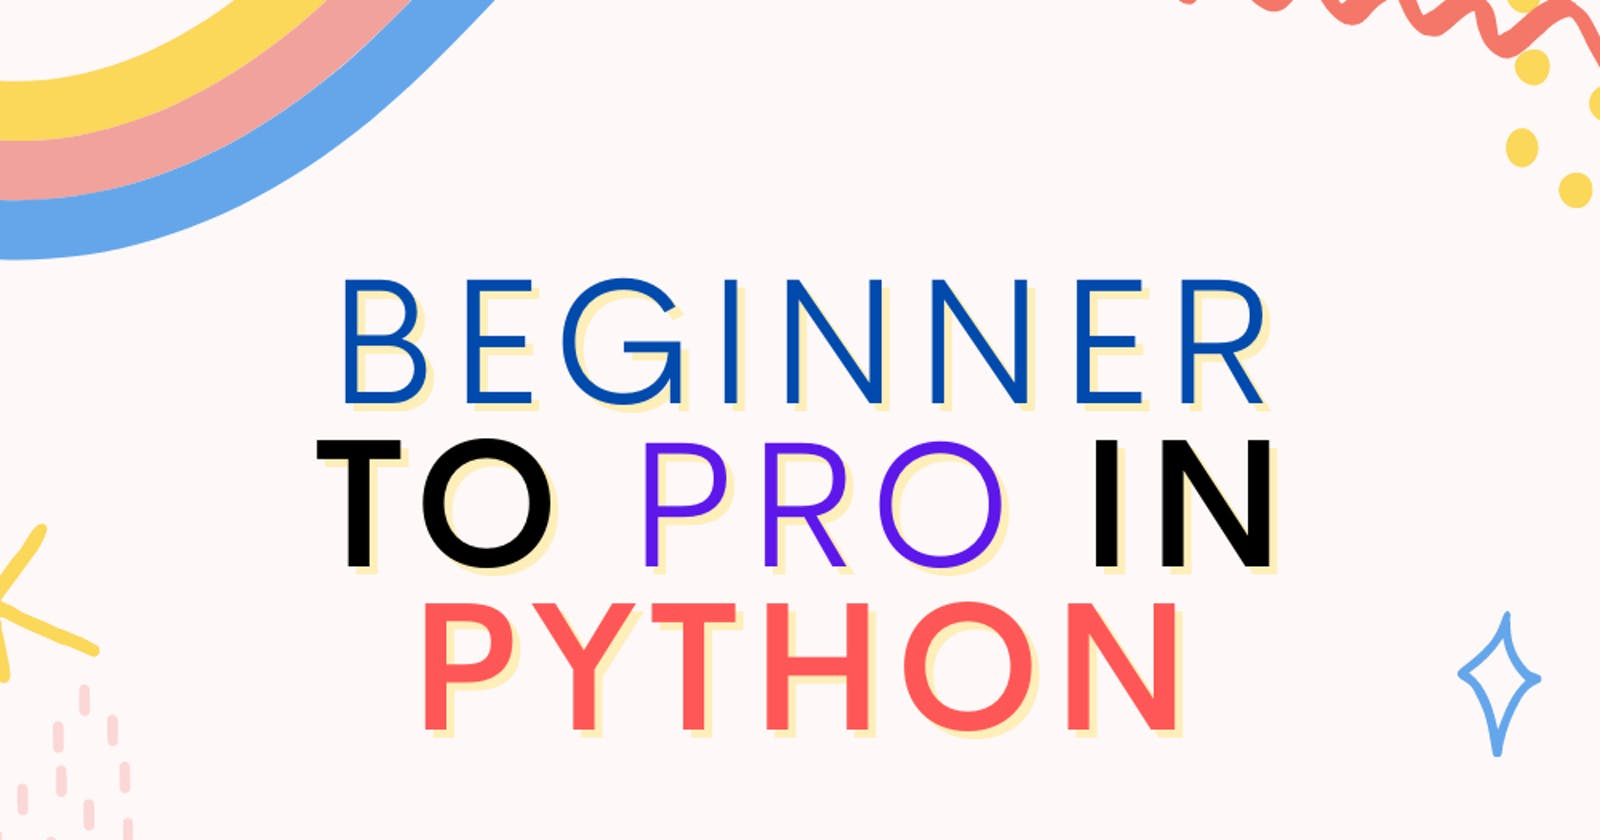 Beginner to pro in Python with these FREE resources